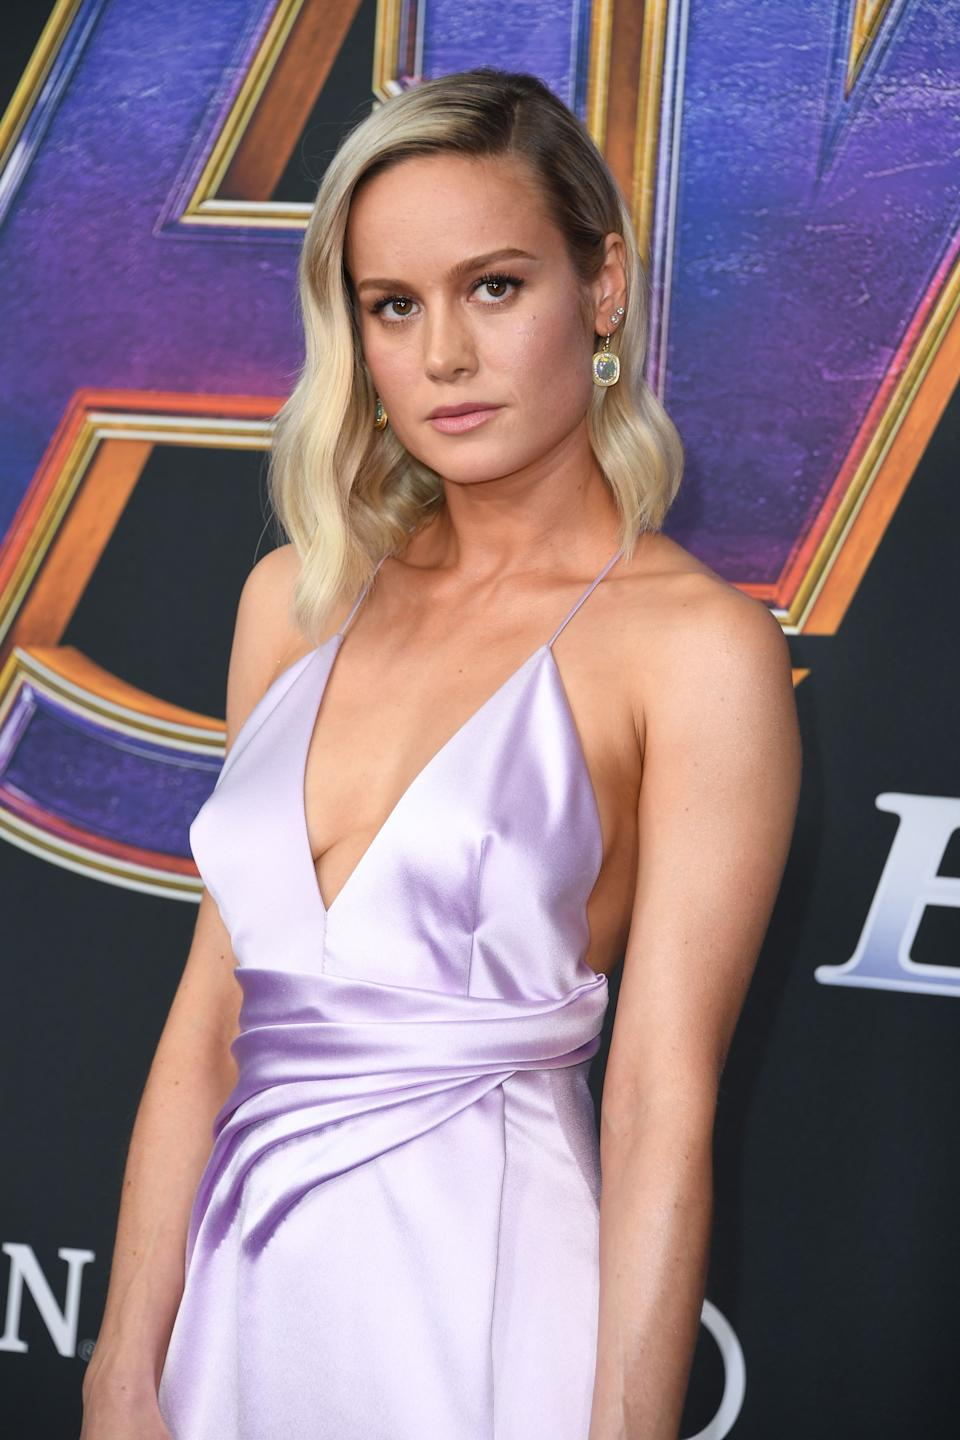 """US actress Brie Larson arrives for the World premiere of Marvel Studios' """"Avengers: Endgame"""" at the Los Angeles Convention Center on April 22, 2019 in Los Angeles. (Photo by VALERIE MACON / AFP)        (Photo credit should read VALERIE MACON/AFP/Getty Images)"""